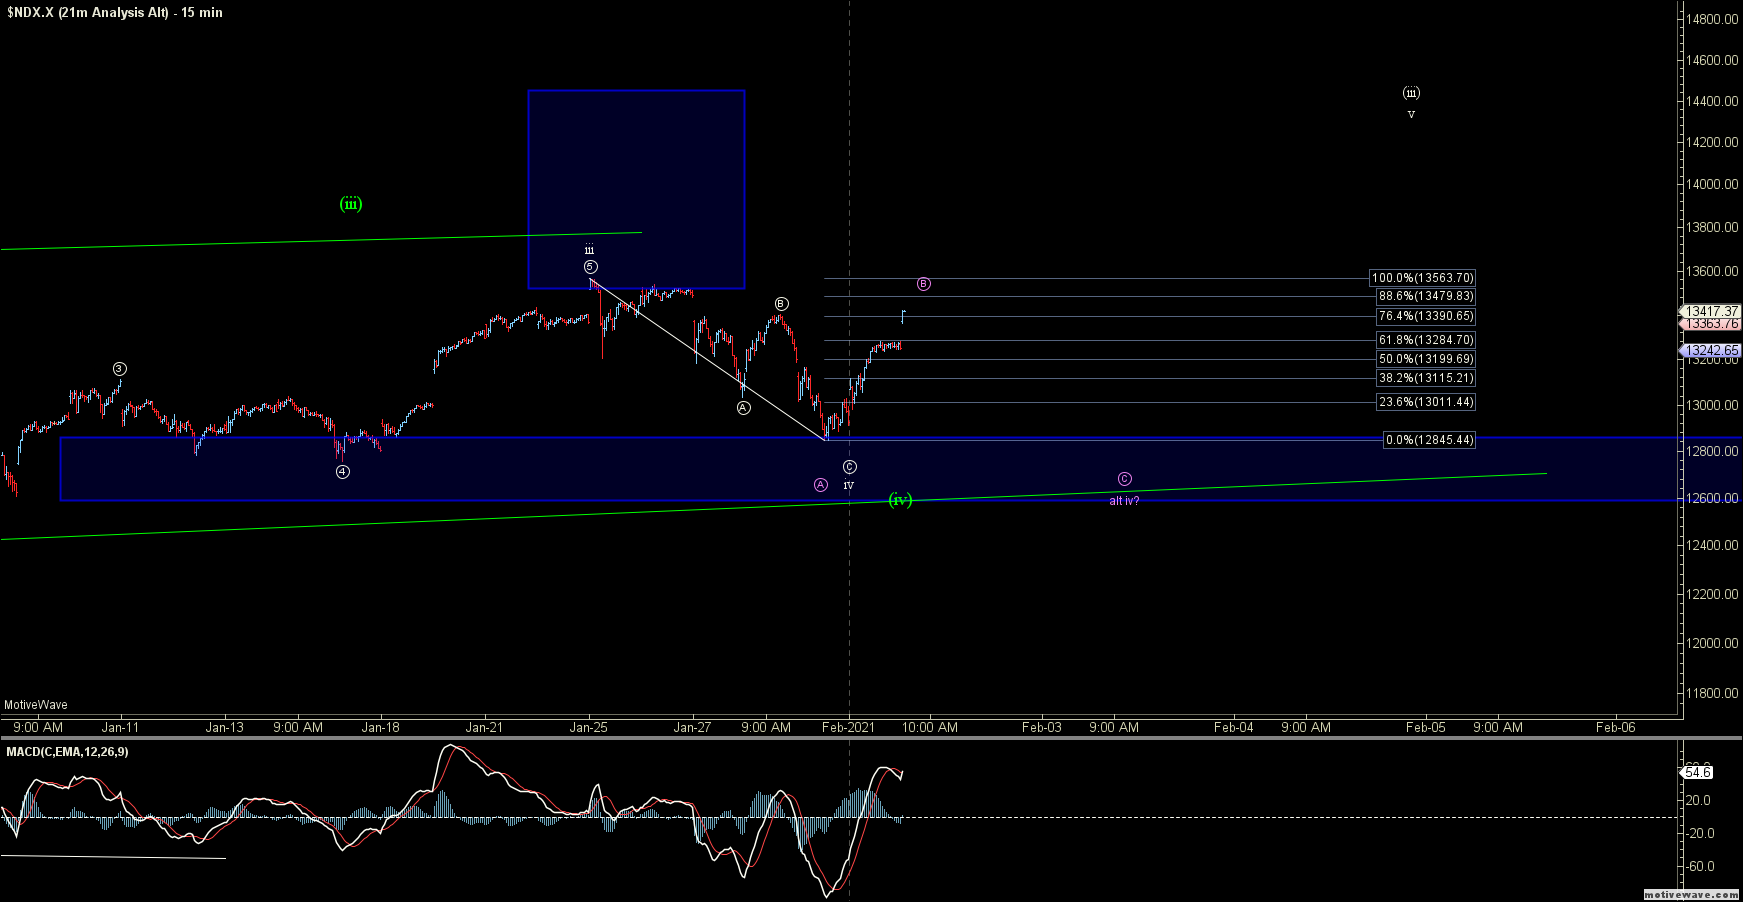 $NDX.X - 21m Analysis Alt - Feb-02 0645 AM (15 min)